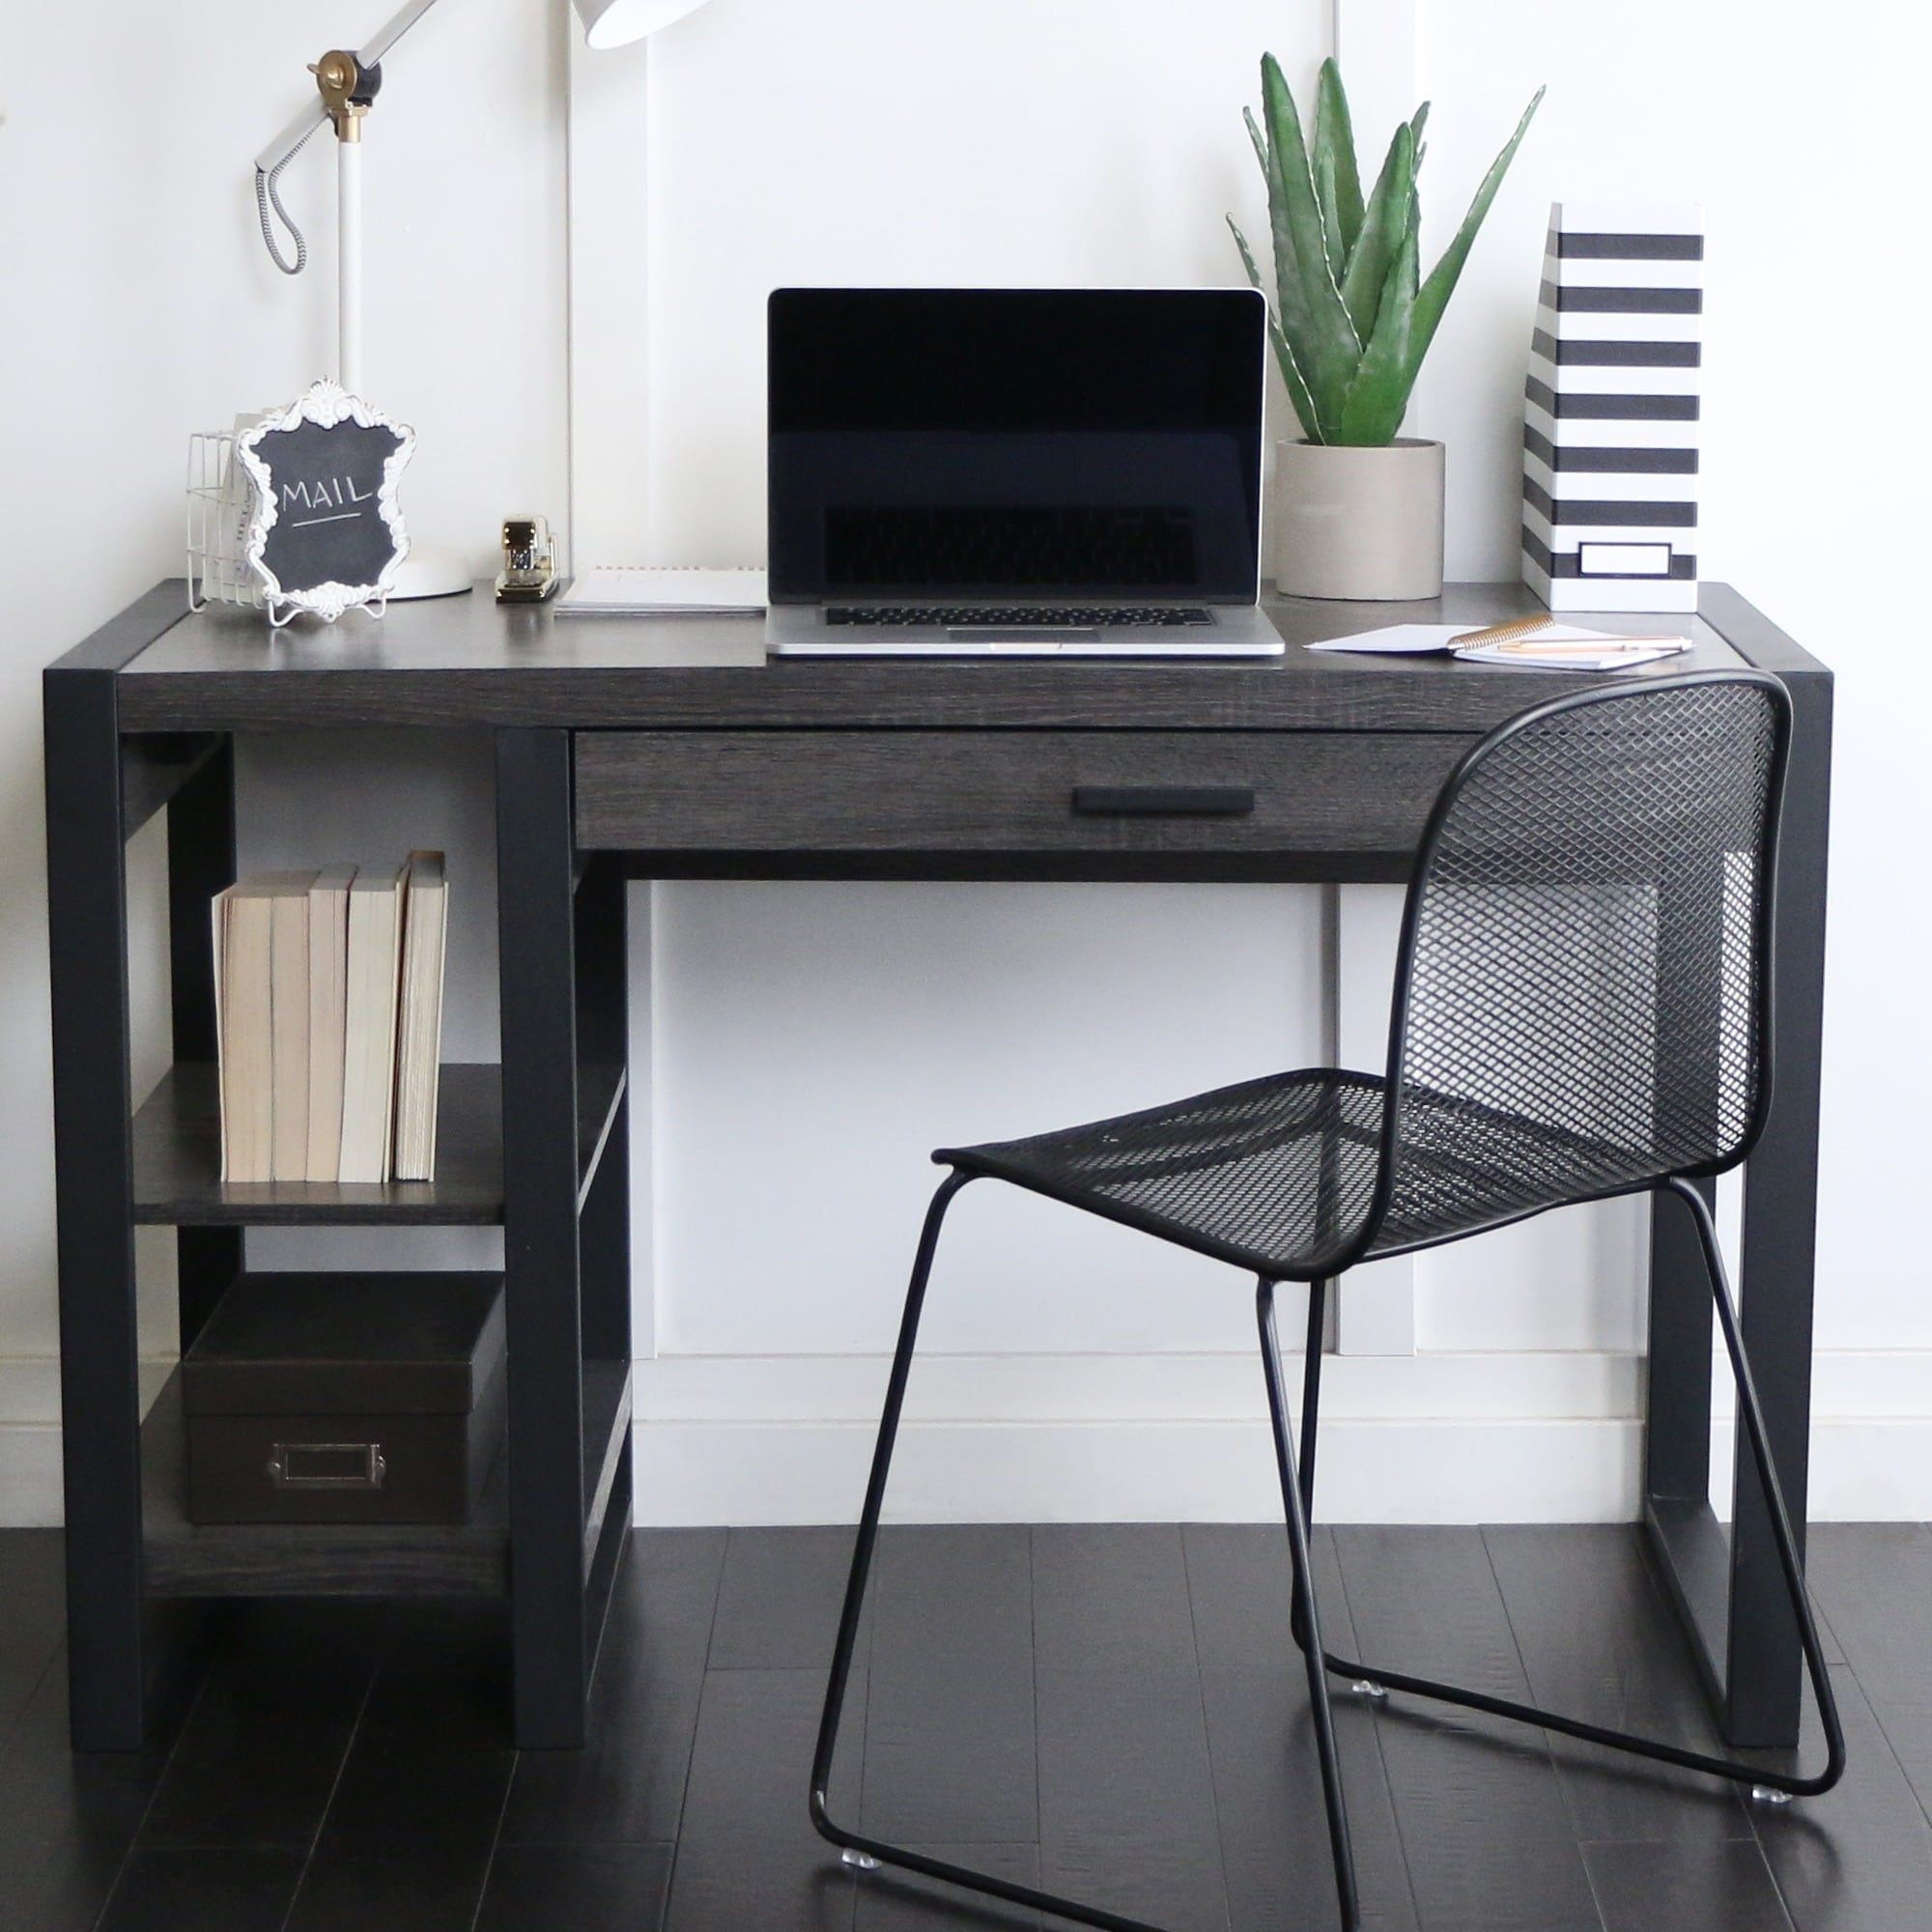 Oversized Wood And Metal Laptop Table: Shop 48-inch Charcoal Computer Desk